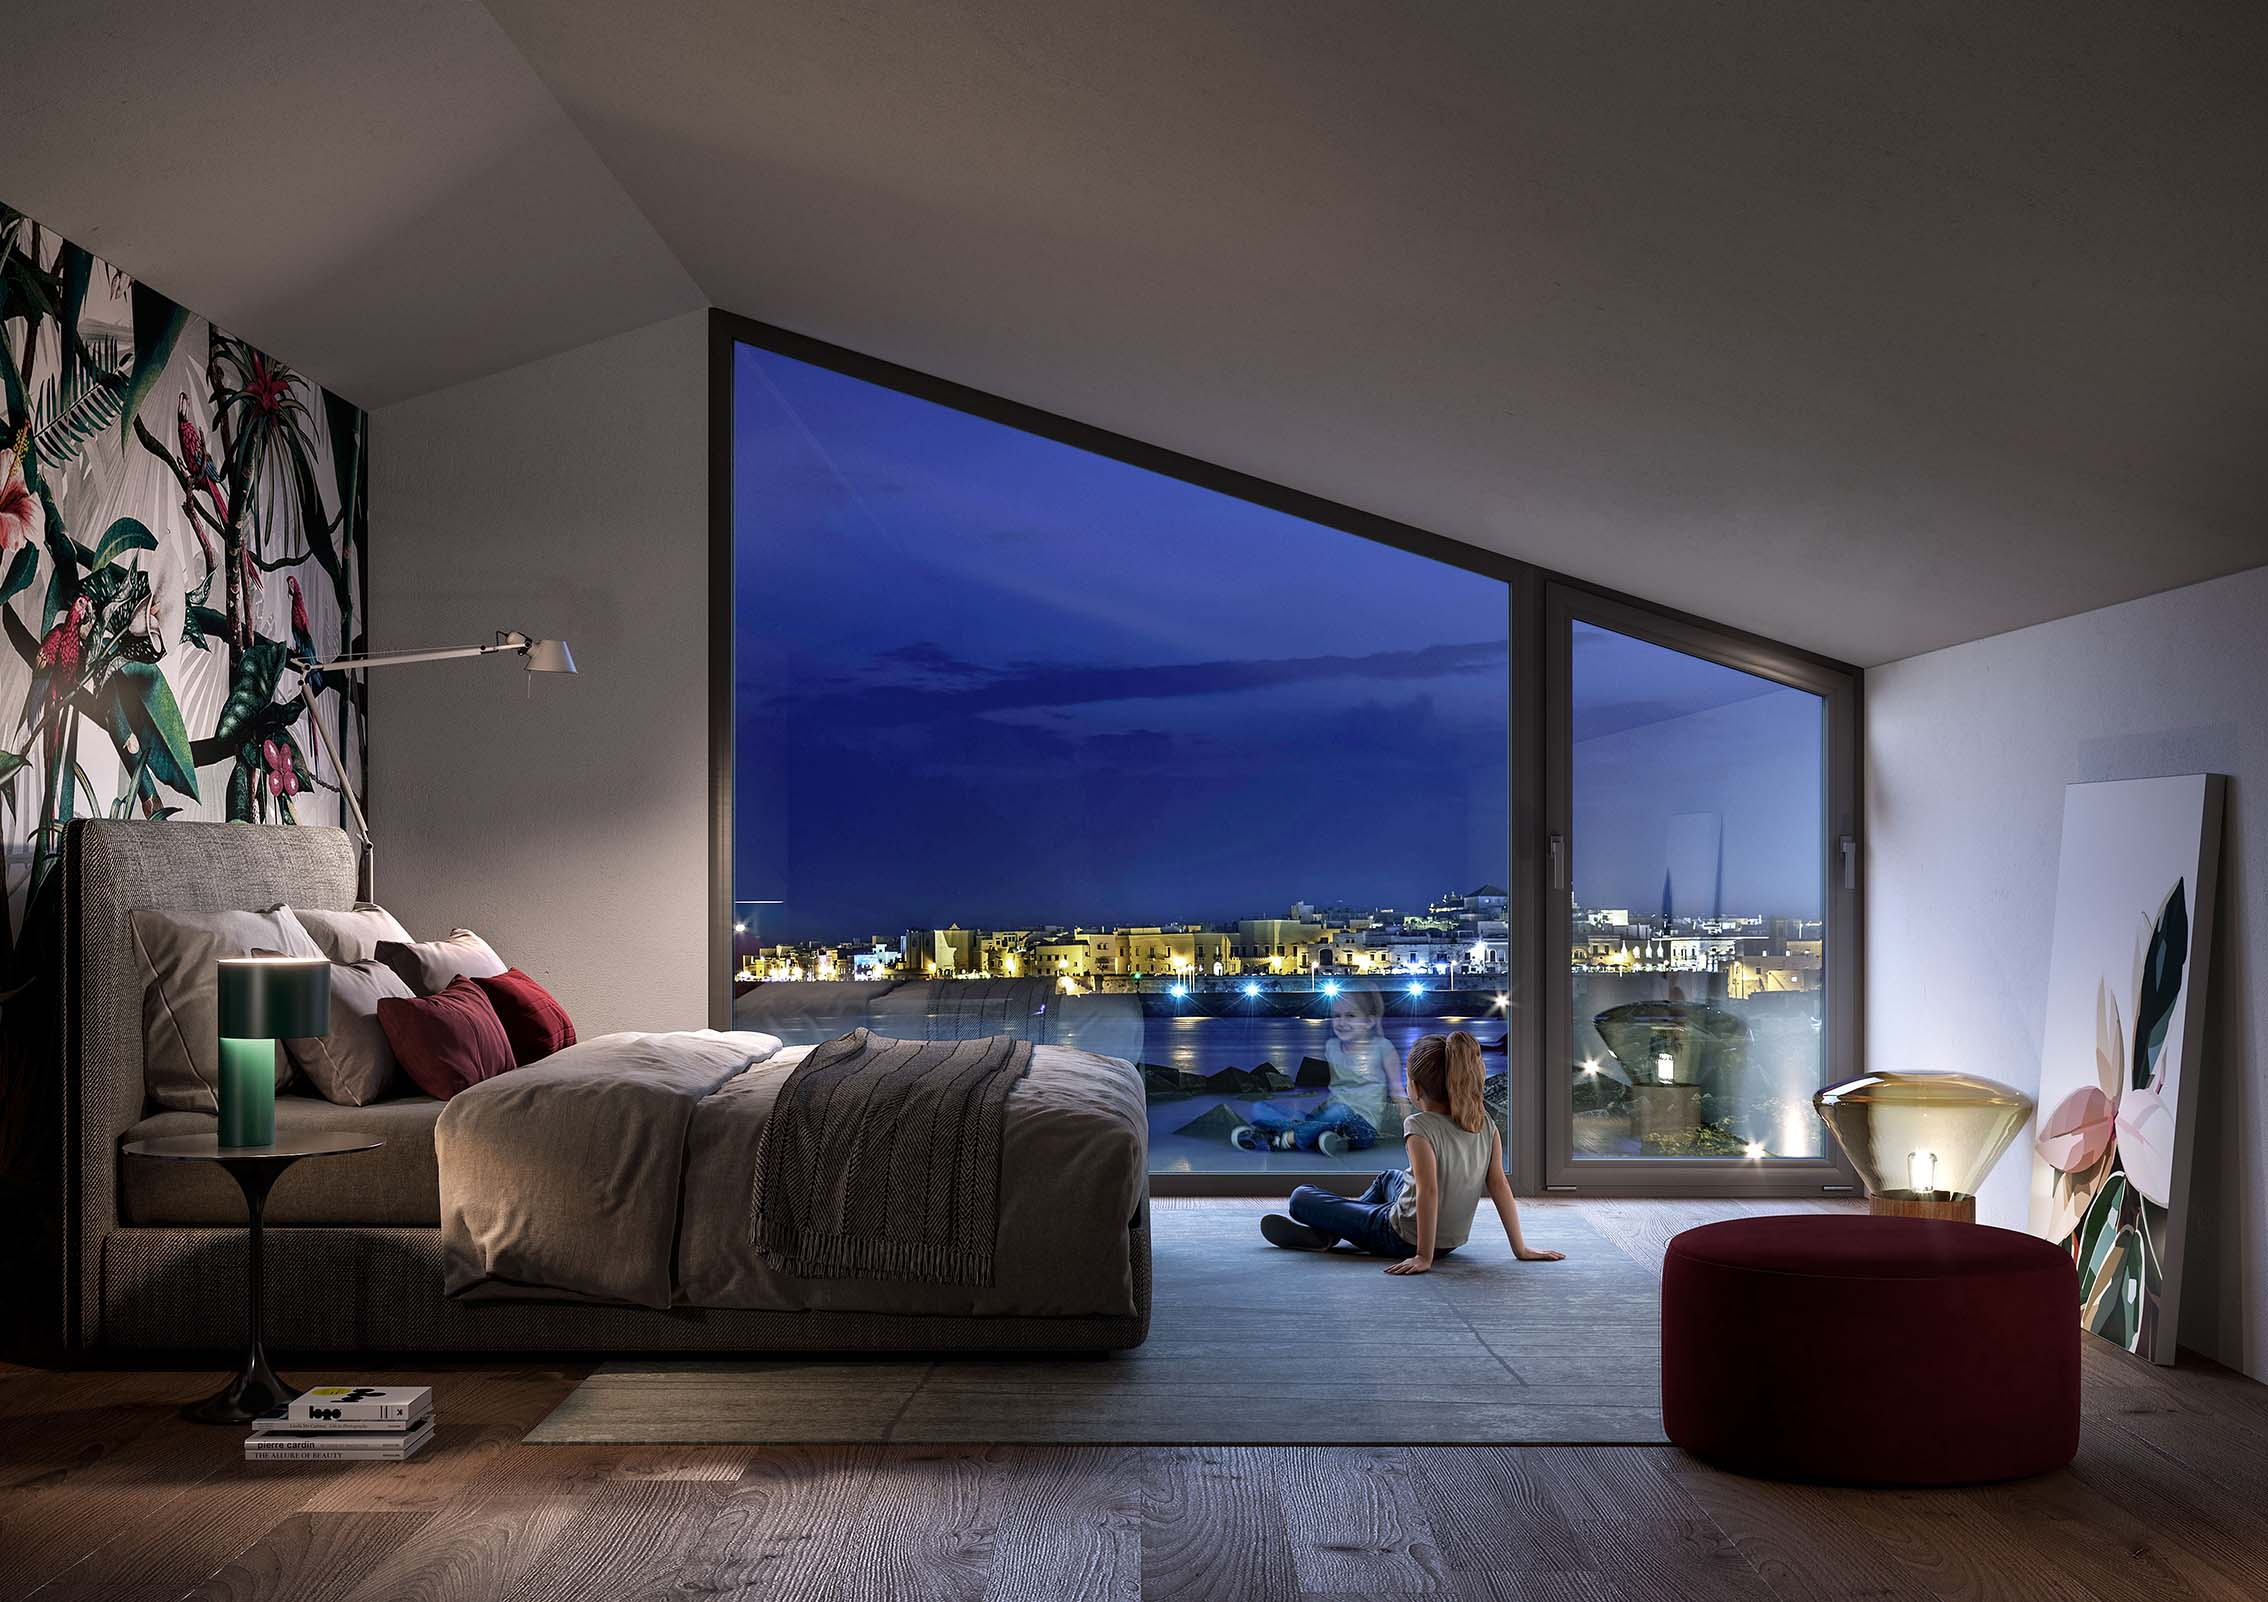 DQG | Avenir, the new windows line which combines elegance and comfort